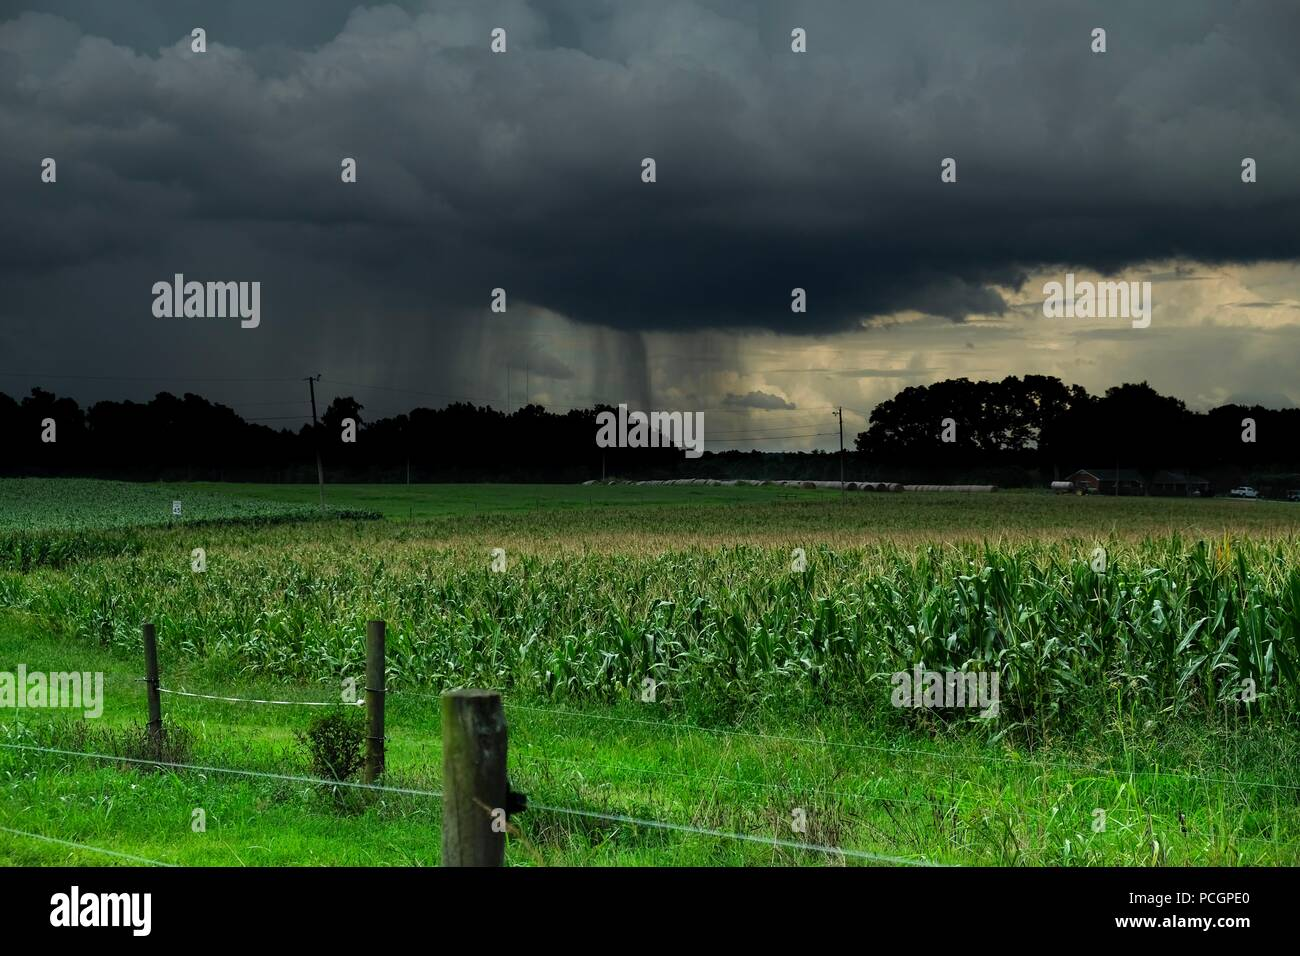 A heavy rain shower across the distance over corn fields - Stock Image